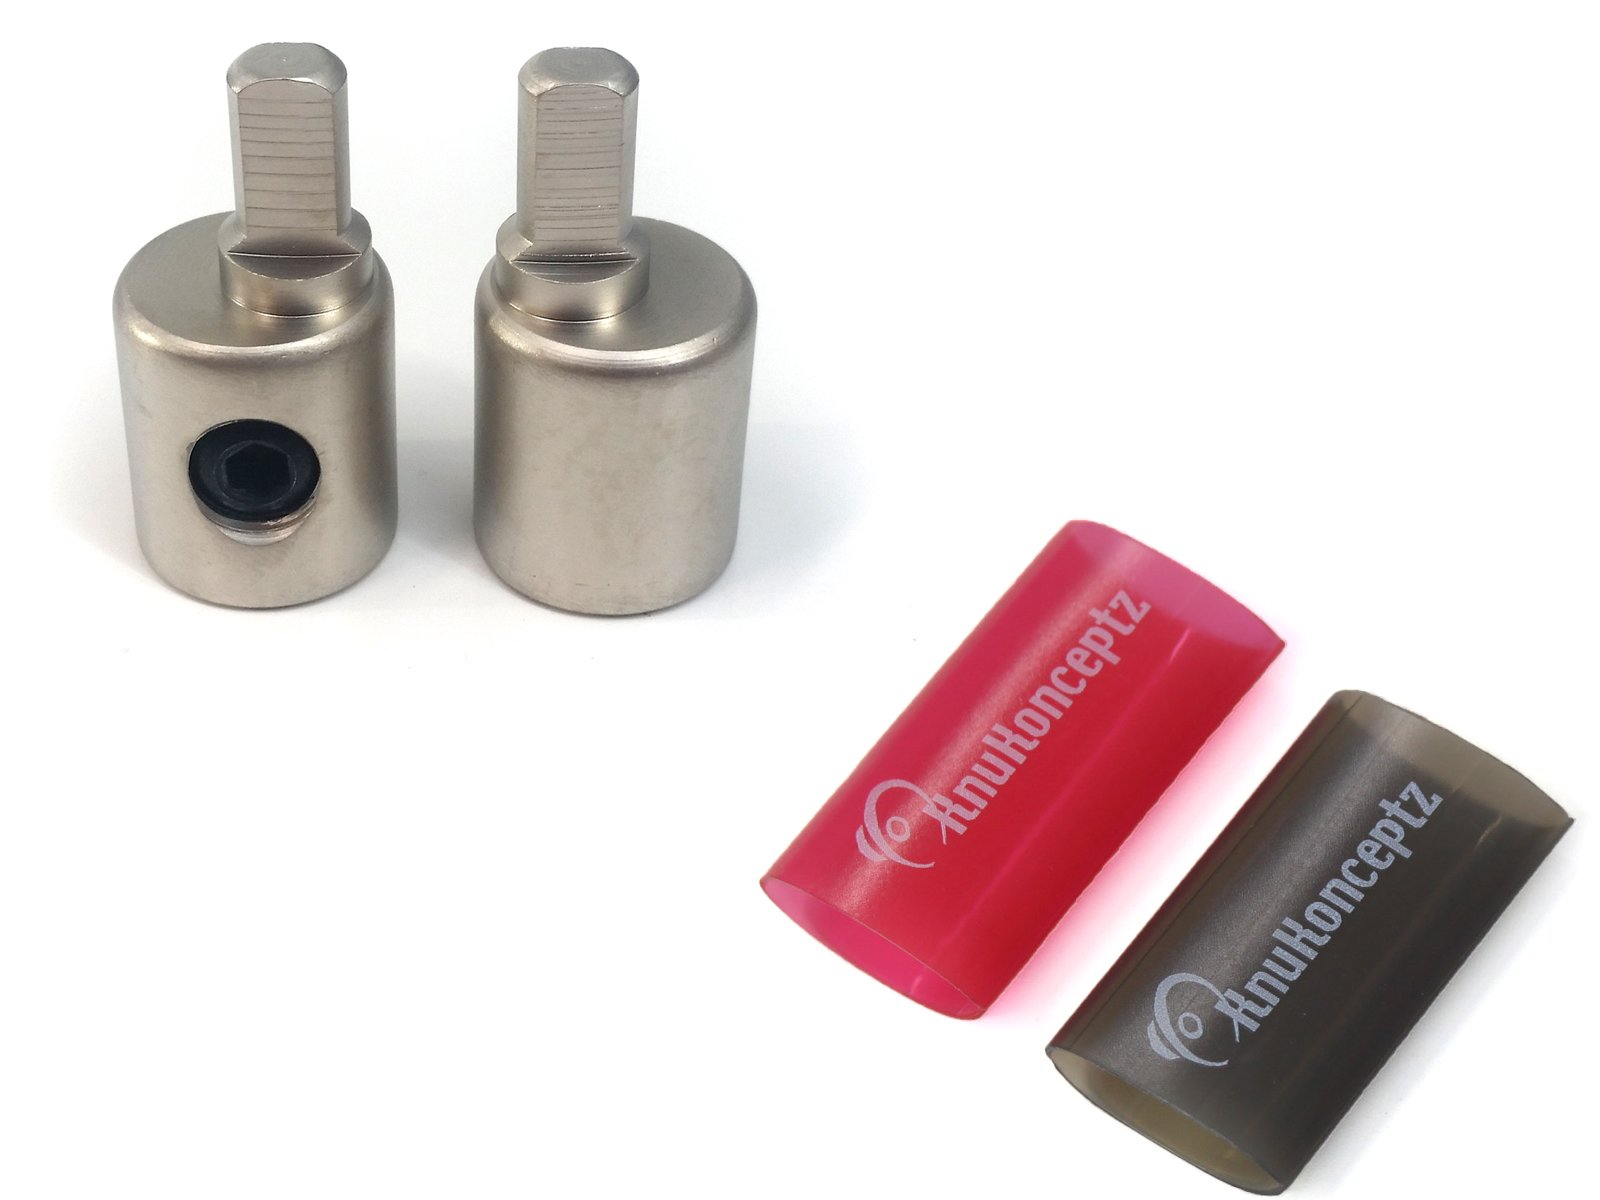 KnuKonceptz Offset Power/Ground Input Wire Gauge Reducer 0-4 Gauge 1/0 Pair with Heat Shrink